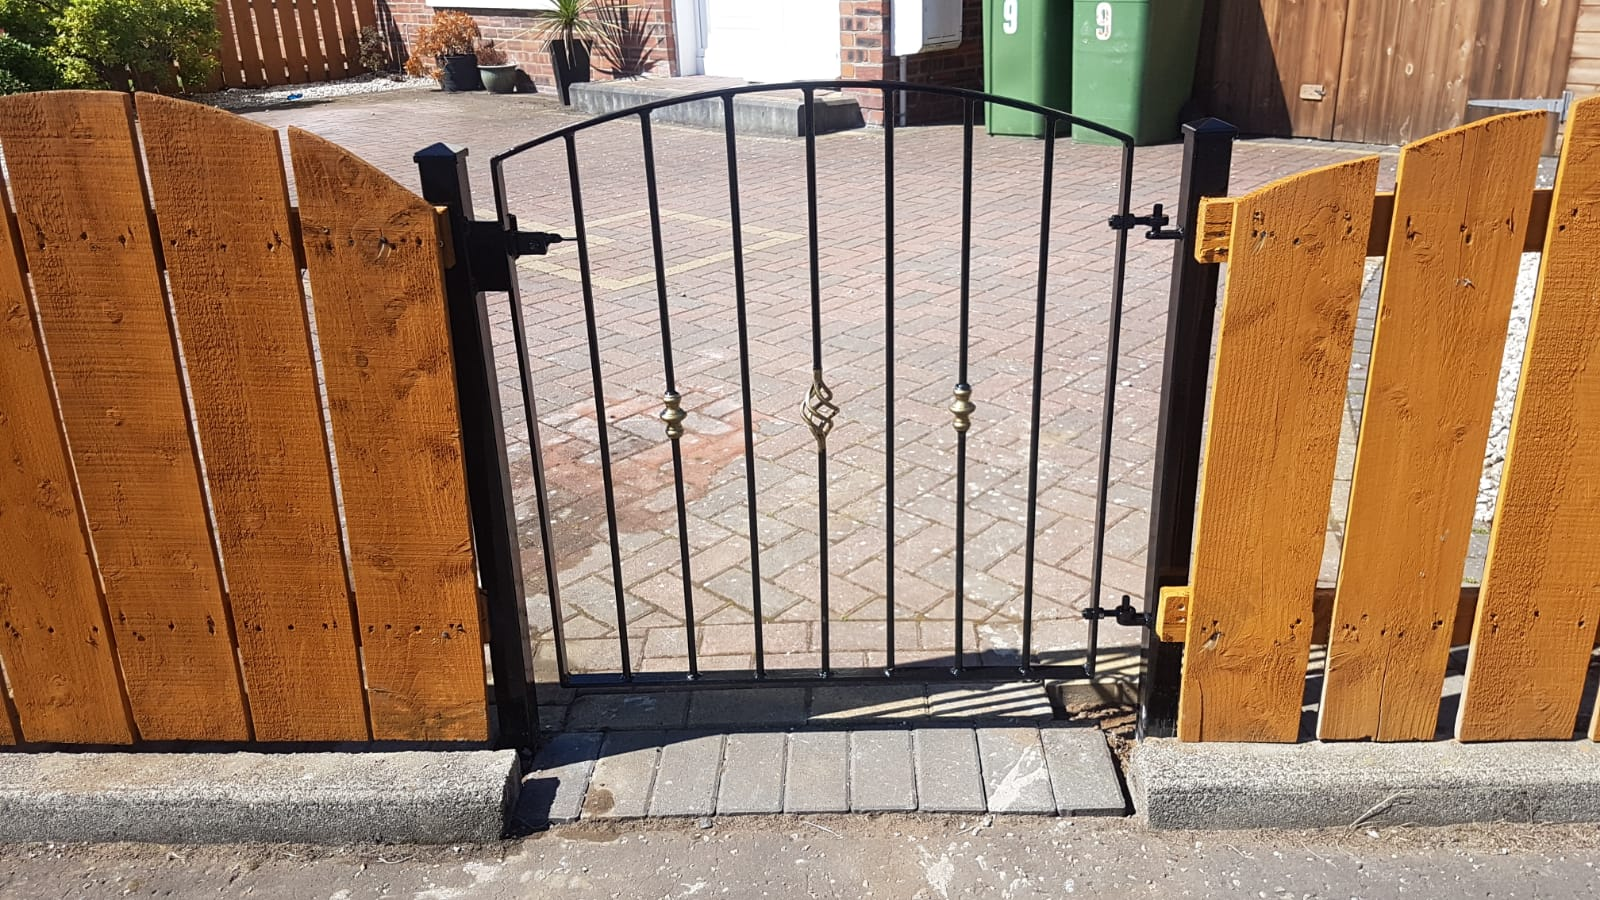 Simple arched metal gate, Ayrshire, Scotland